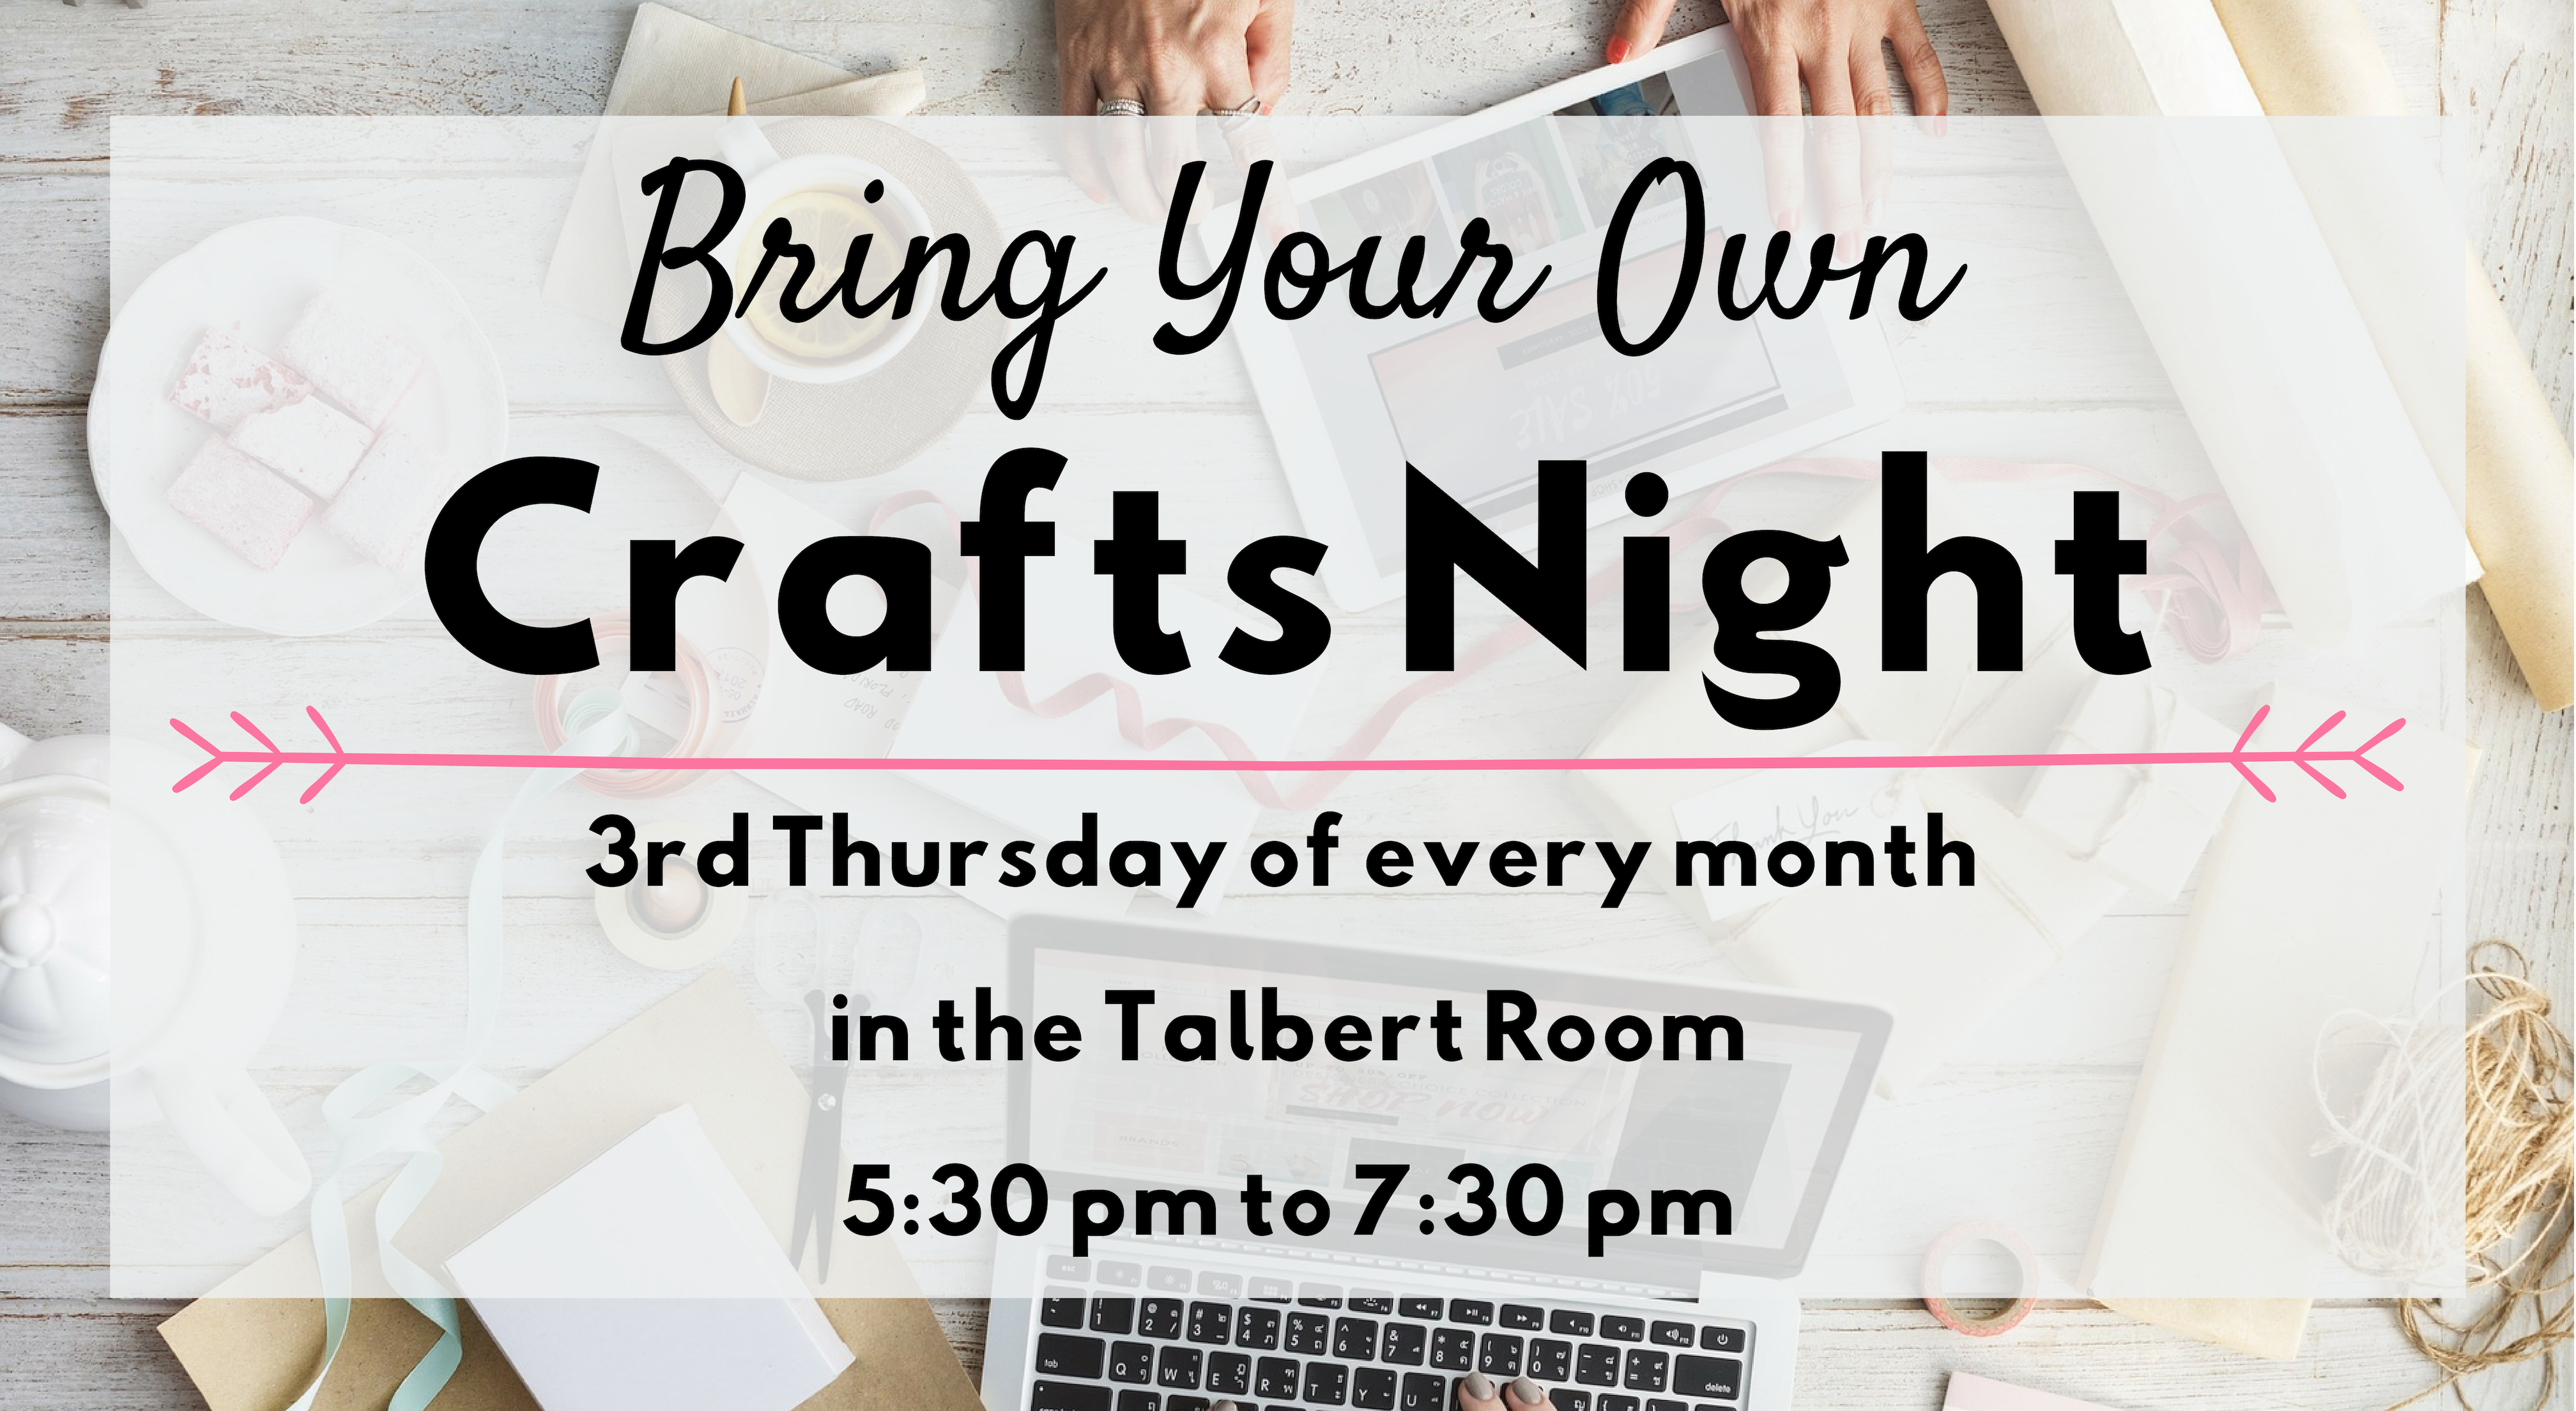 Bring Your Own Crafts Night